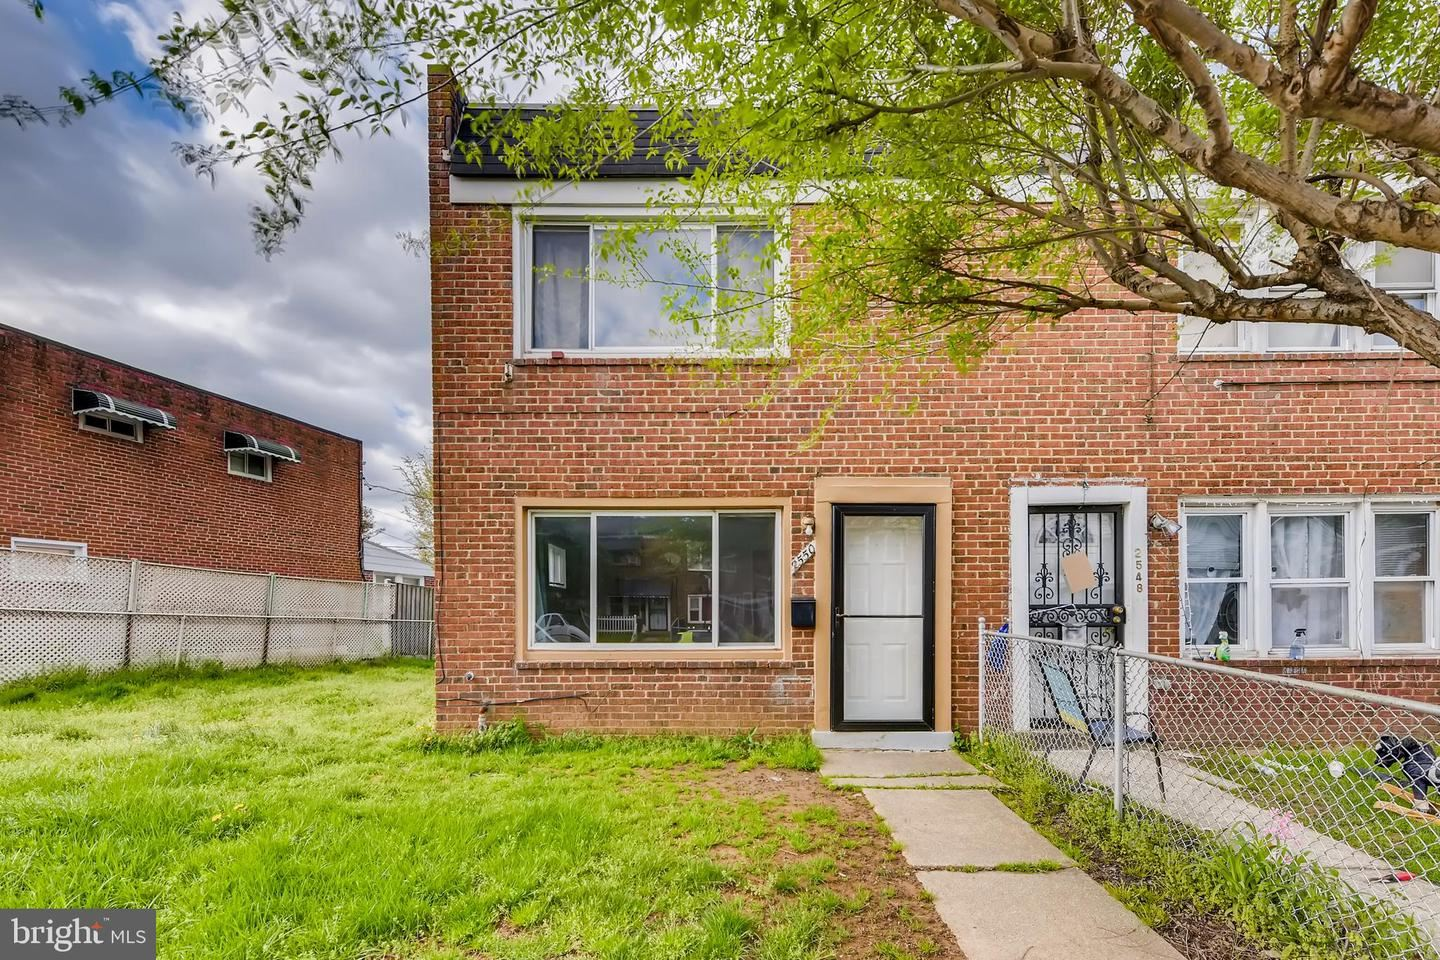 Photo of 2550 SOUTHDENE AVE, BALTIMORE, MD 21230 (MLS # MDBA547612)